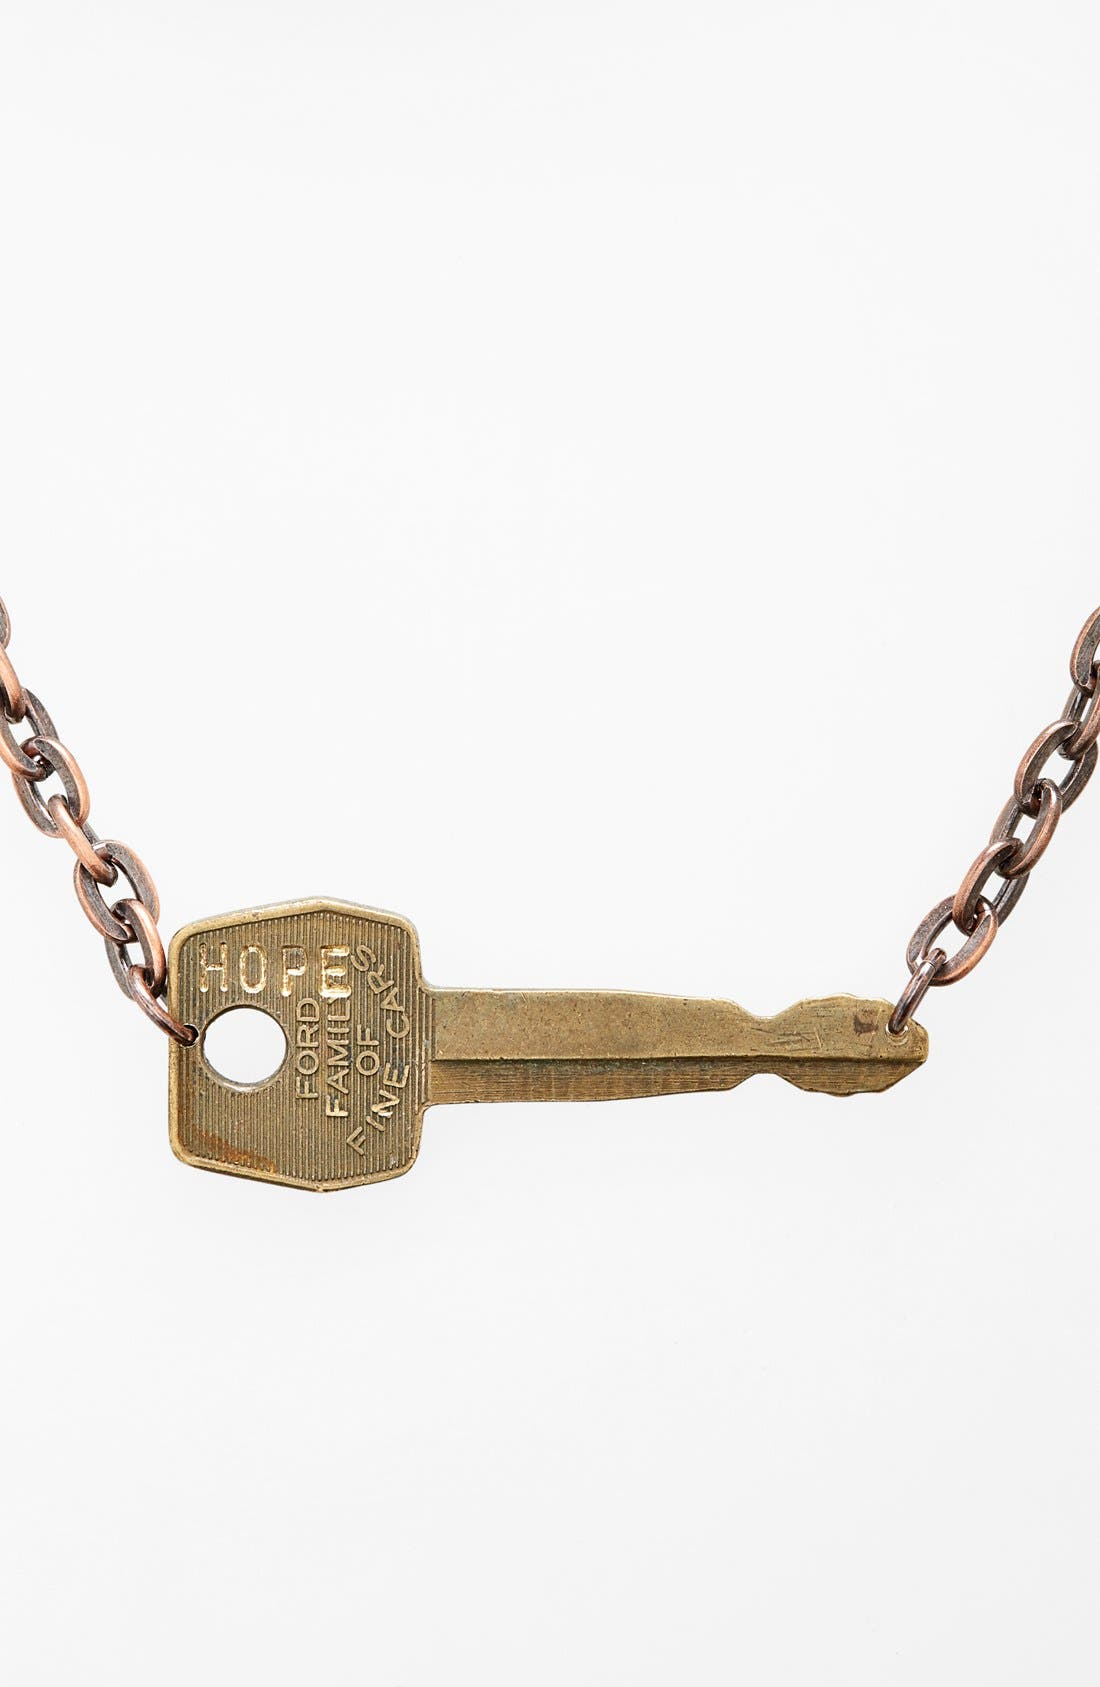 Alternate Image 1 Selected - The Giving Keys 'Never Ending' 24-Inch Copper Chain Key Necklace